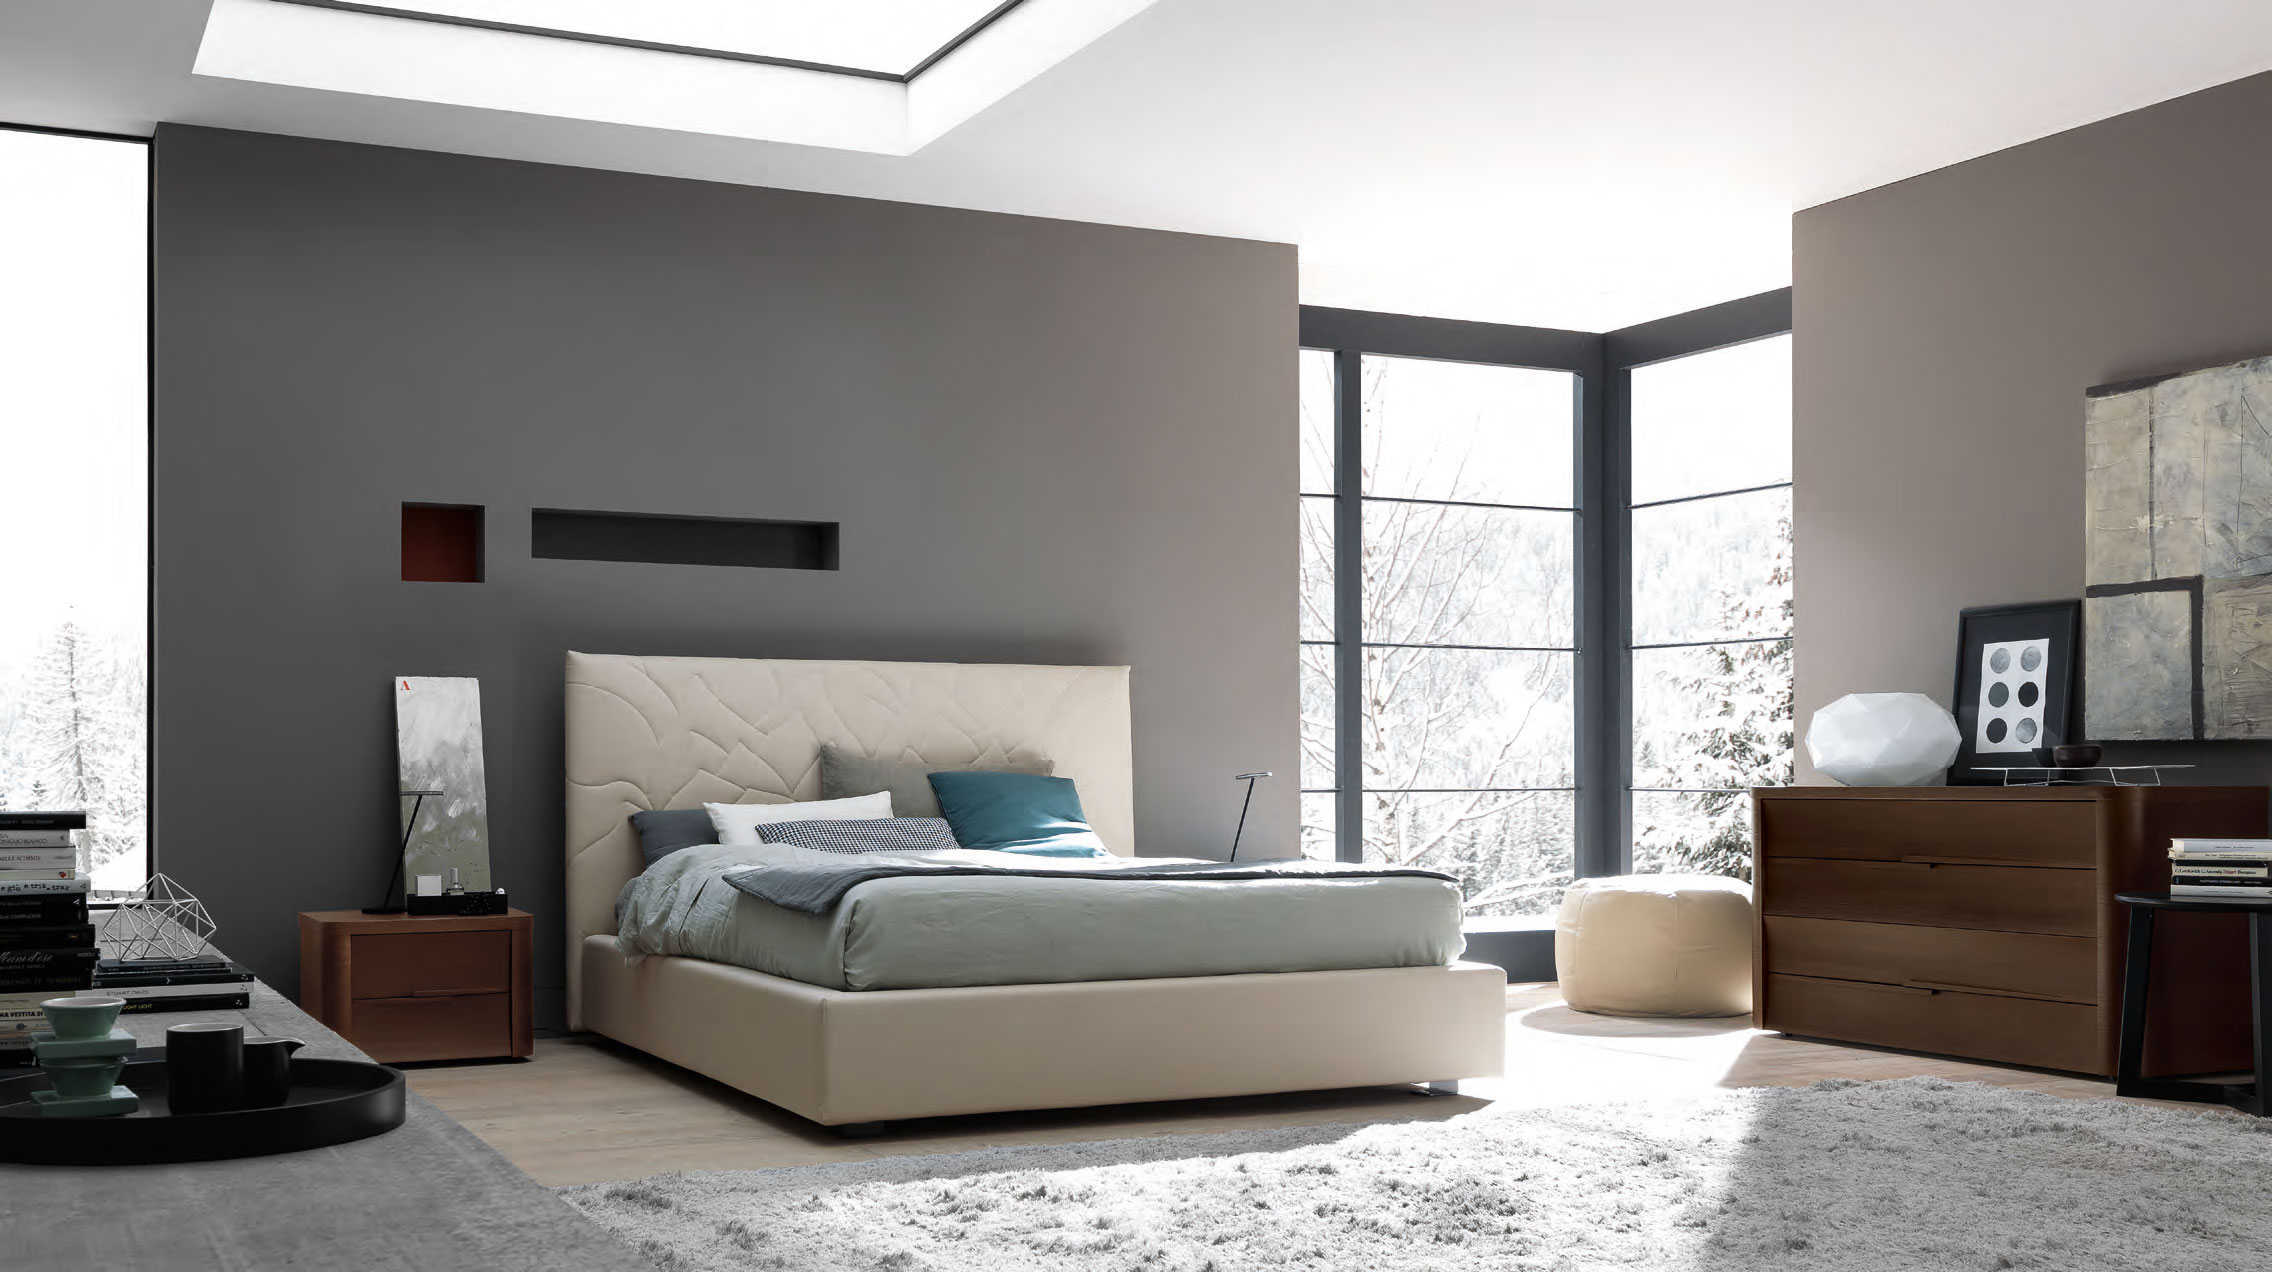 40 modern bedroom for your home 19244 | modern bedroom design